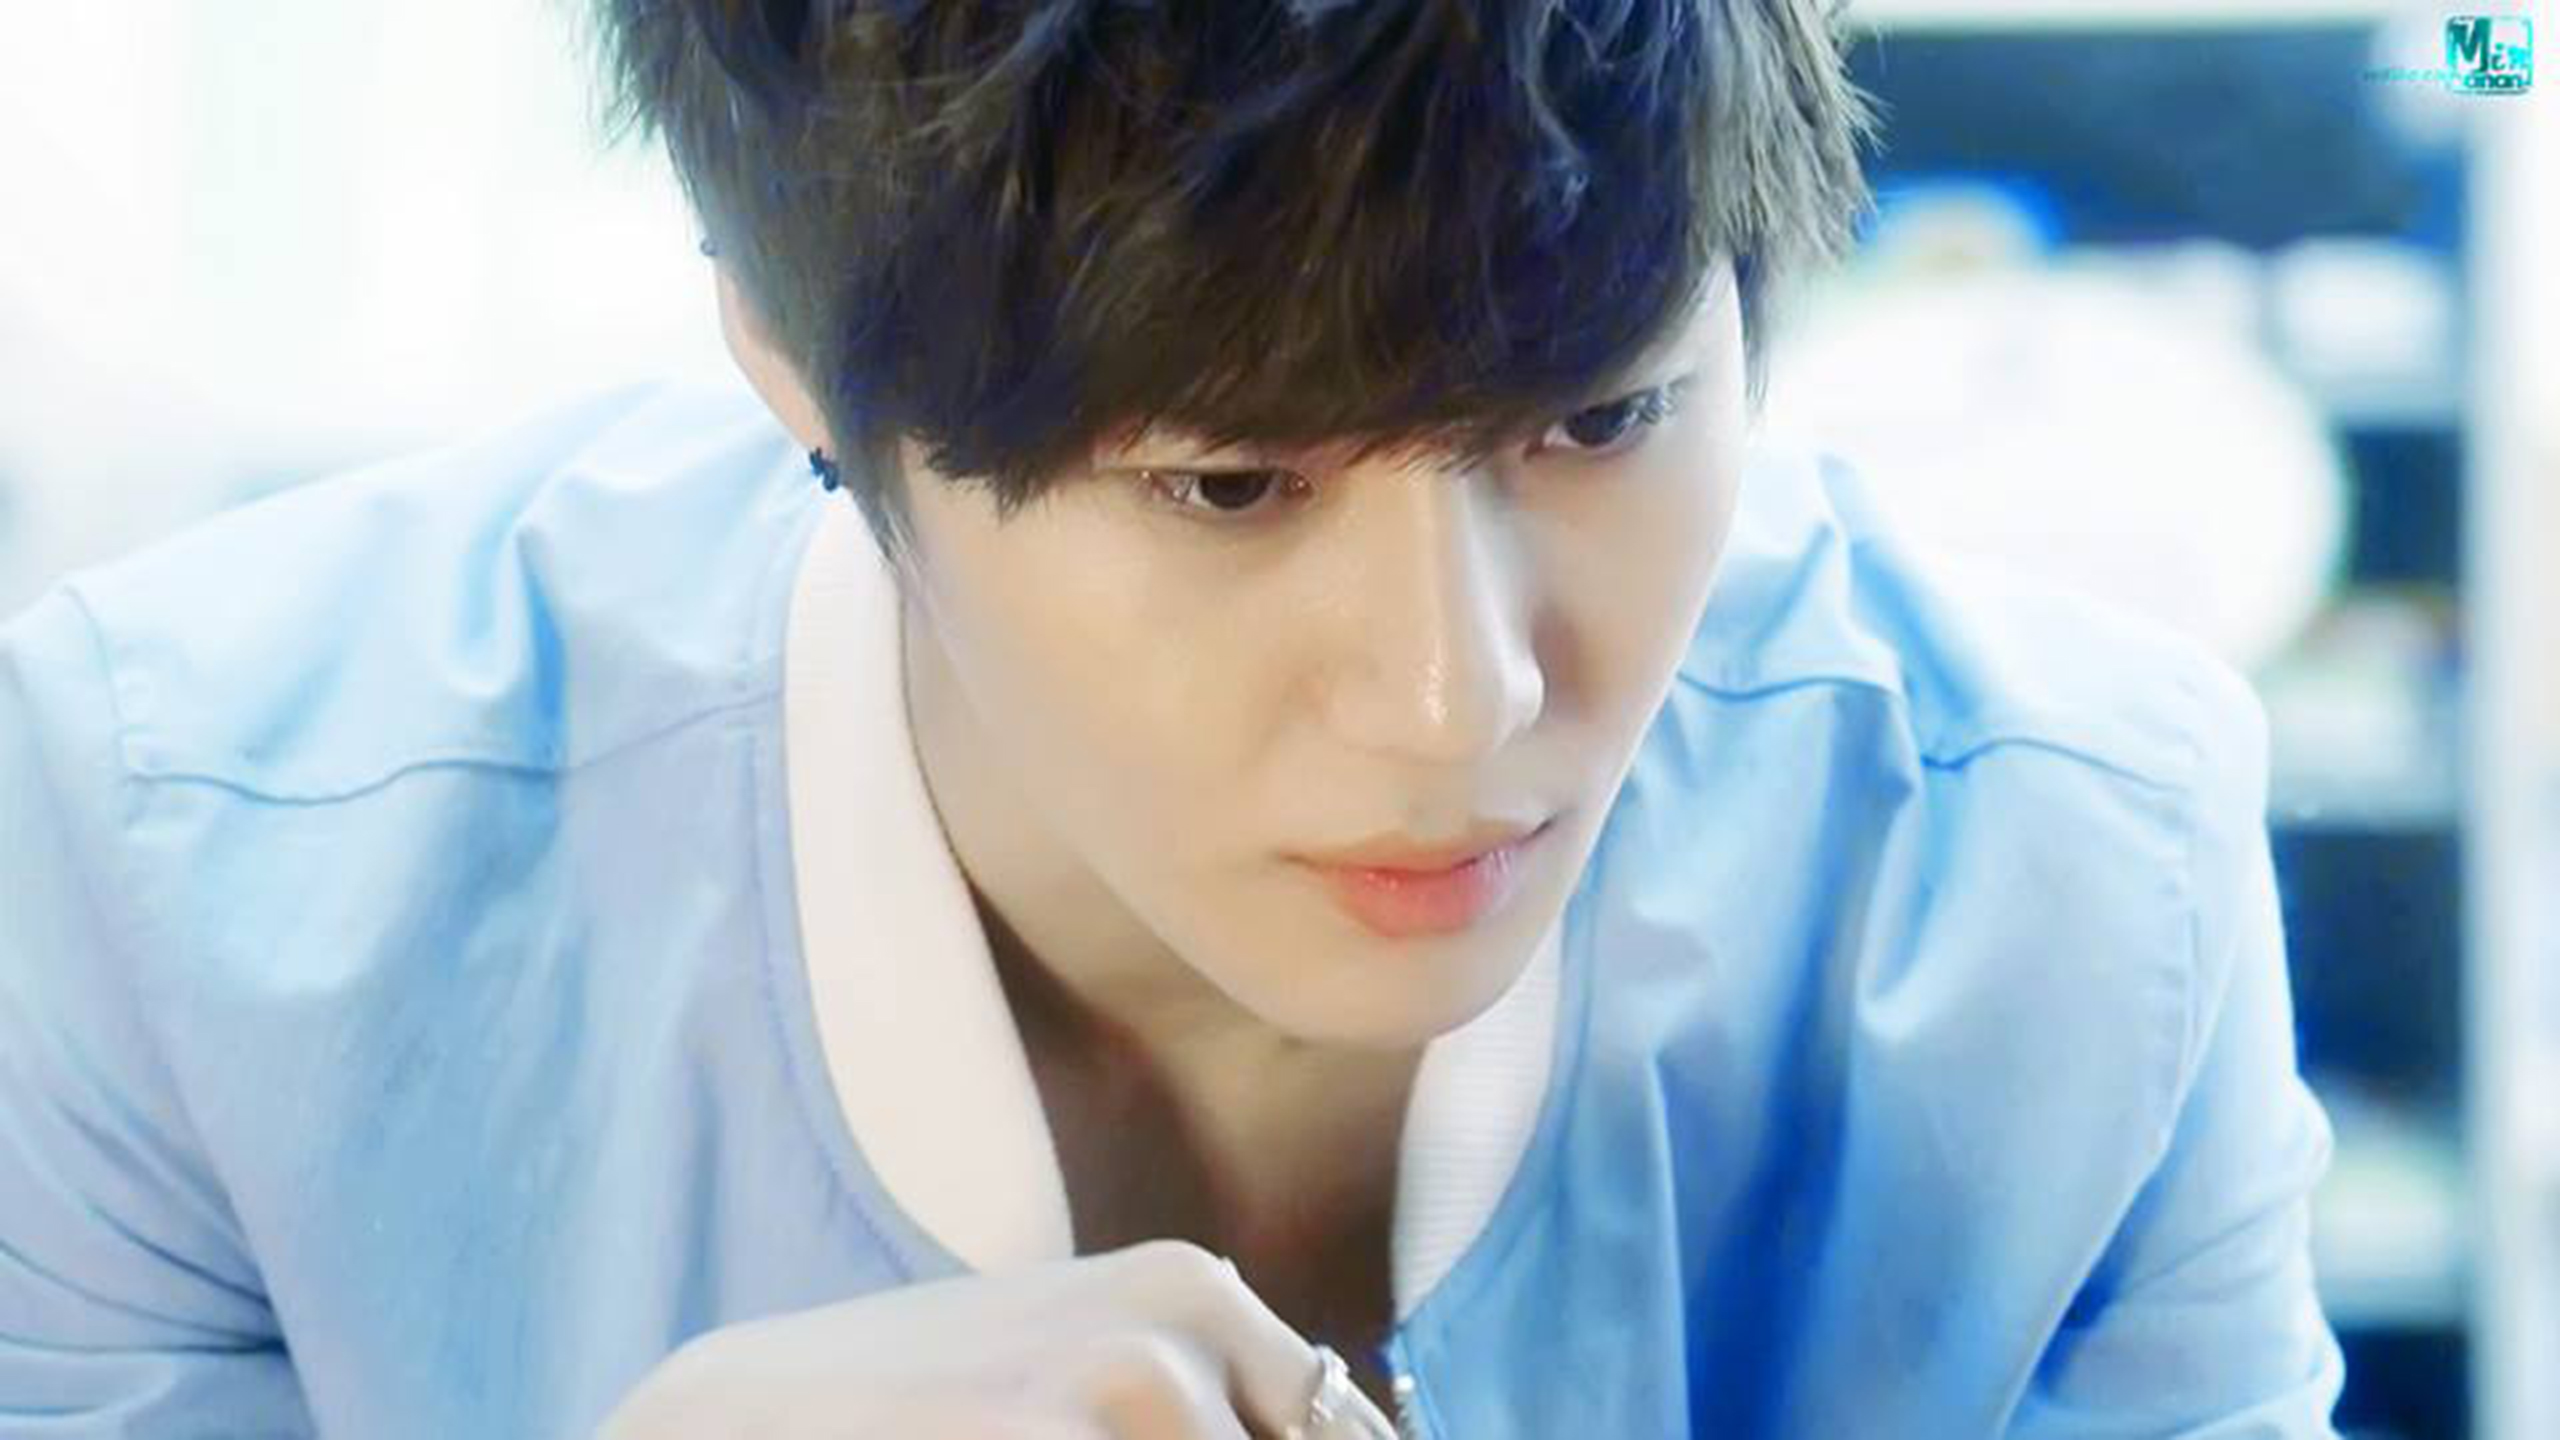 Taemin Wallpaper   Lee Taemin Wallpaper 34851324 2560x1440